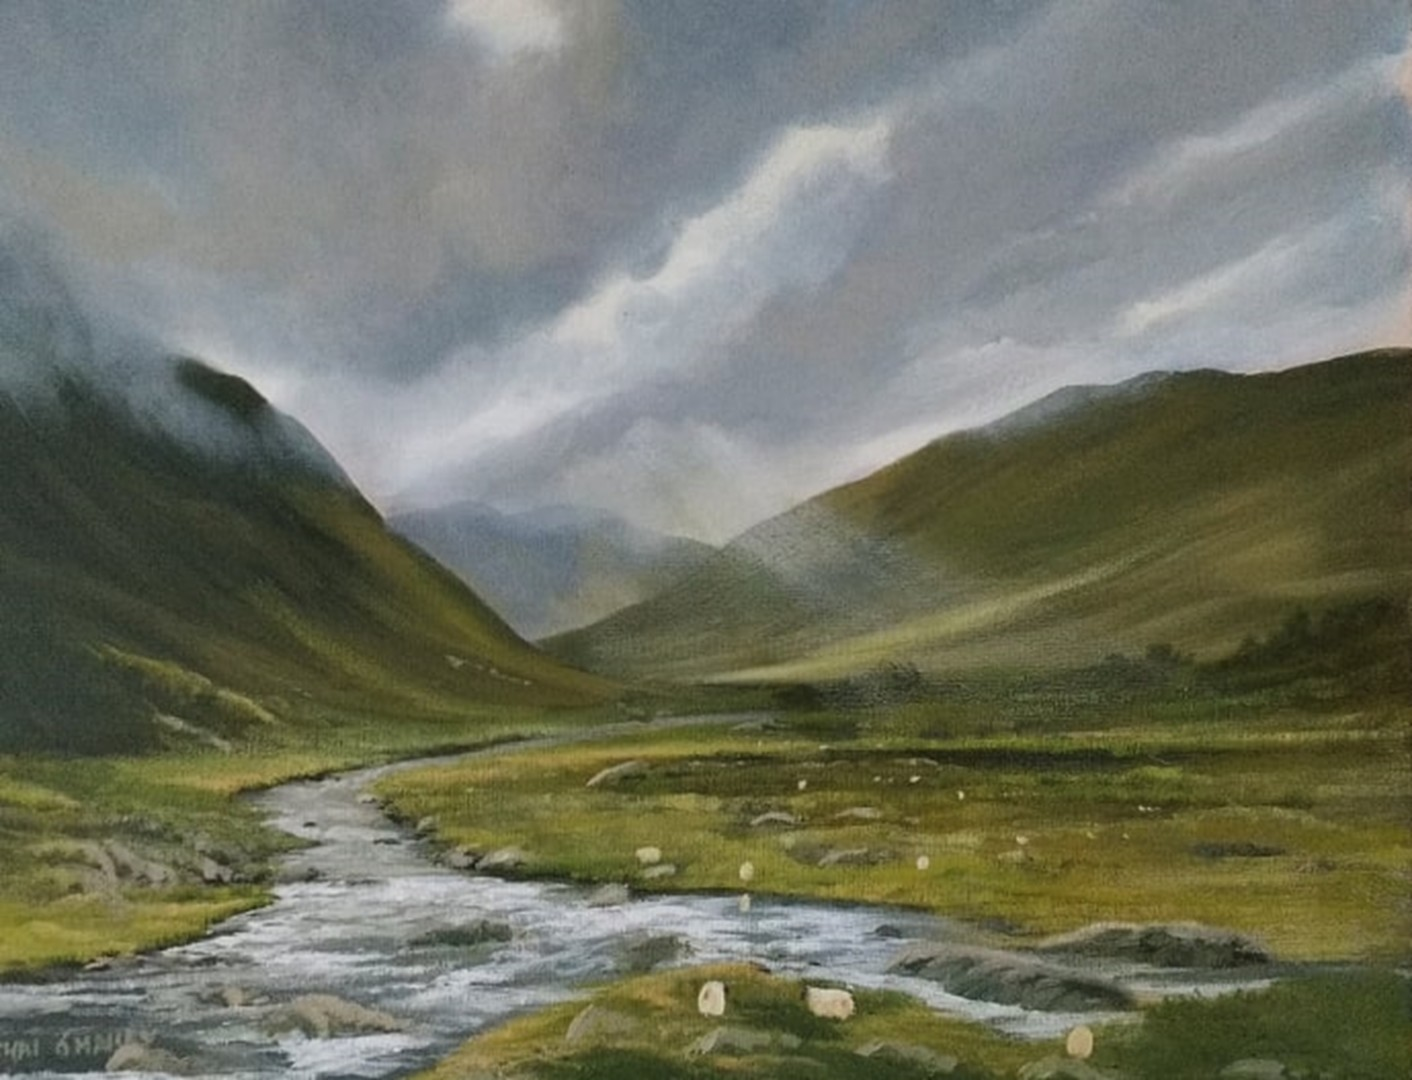 Cathal O Malley - Glenummera river